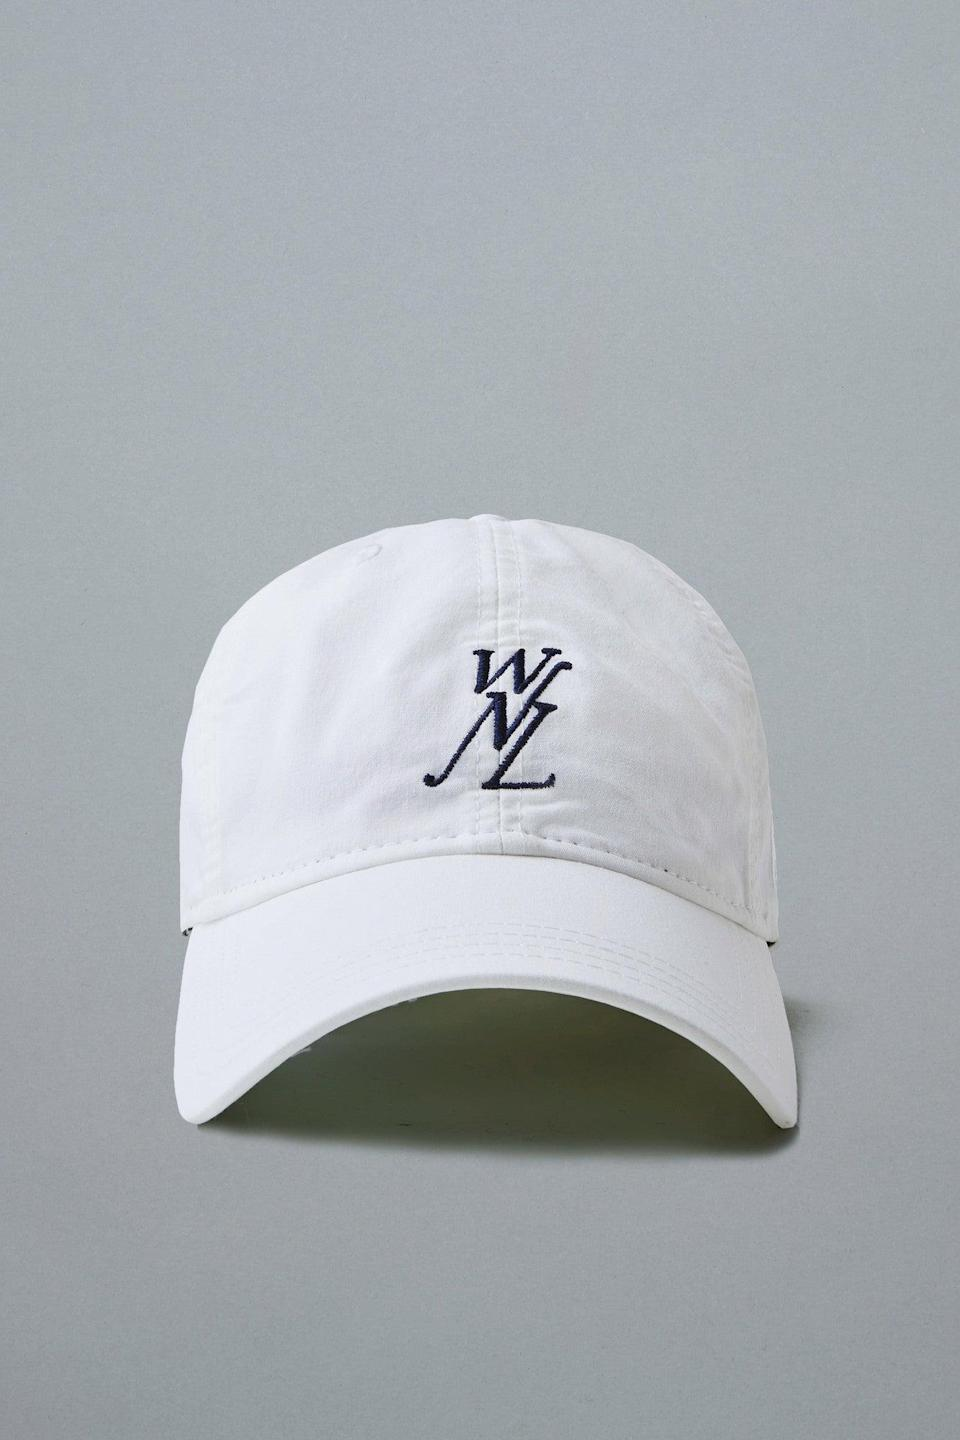 """Give your dad's go-to baseball cap an upgrade with this iconic WNL (which stands for """"We Need Leaders"""") alternative by Public School NY, the CFDA-winning streetwear brand co-founded by Maxwell Osborne, a Black designer from Brooklyn, (alongside Dao-Yi Chow, a Chinese designer from Queens) in 2008. <br> <br> <strong>Public School</strong> WNL Pastel Dad Hat, $, available at <a href=""""https://go.skimresources.com/?id=30283X879131&url=https%3A%2F%2Fwww.publicschoolnyc.com%2Fwnl-pastel-dad-hat.html%3F___store%3Ddefault"""" rel=""""nofollow noopener"""" target=""""_blank"""" data-ylk=""""slk:Public School"""" class=""""link rapid-noclick-resp"""">Public School</a>"""